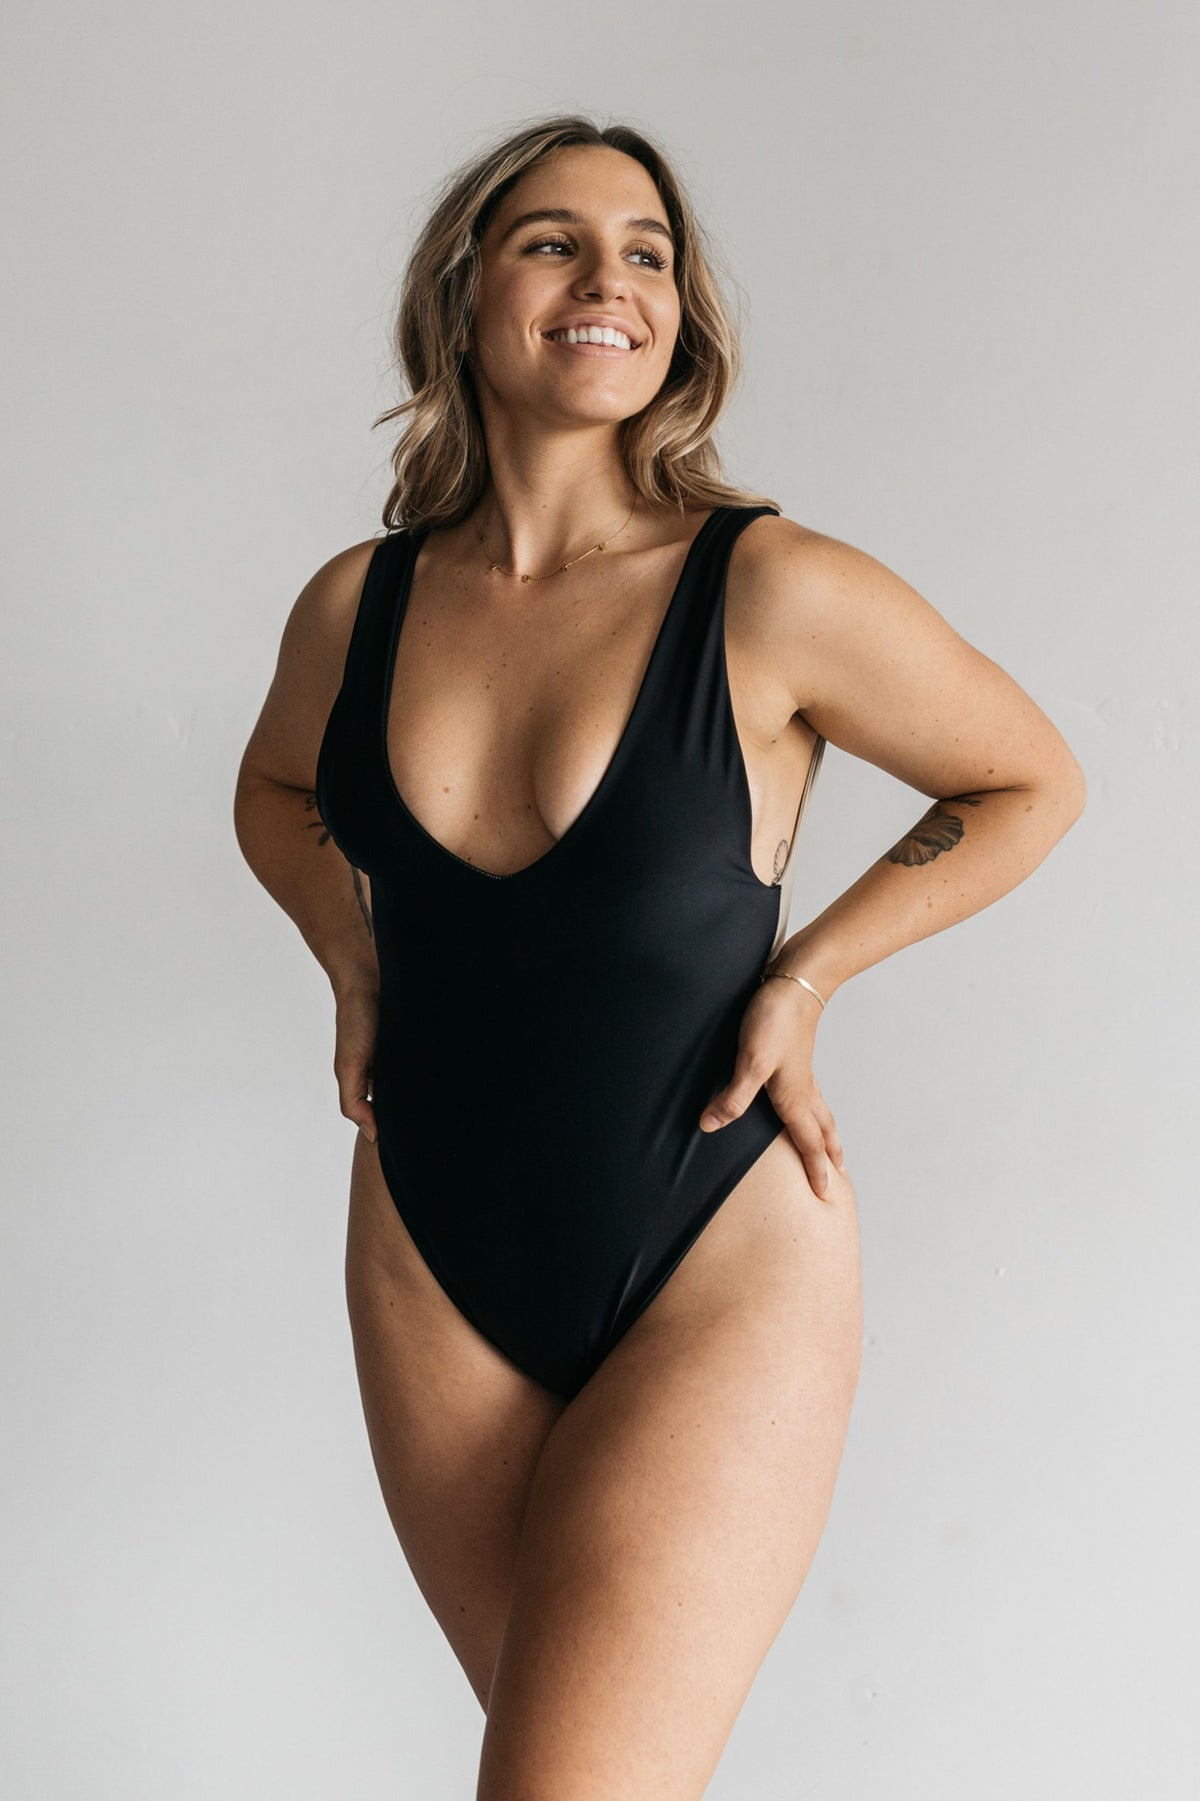 A woman standing with her hands on her hips wearing a wearing a black one piece swimsuit with a v neckline and minimal coverage.